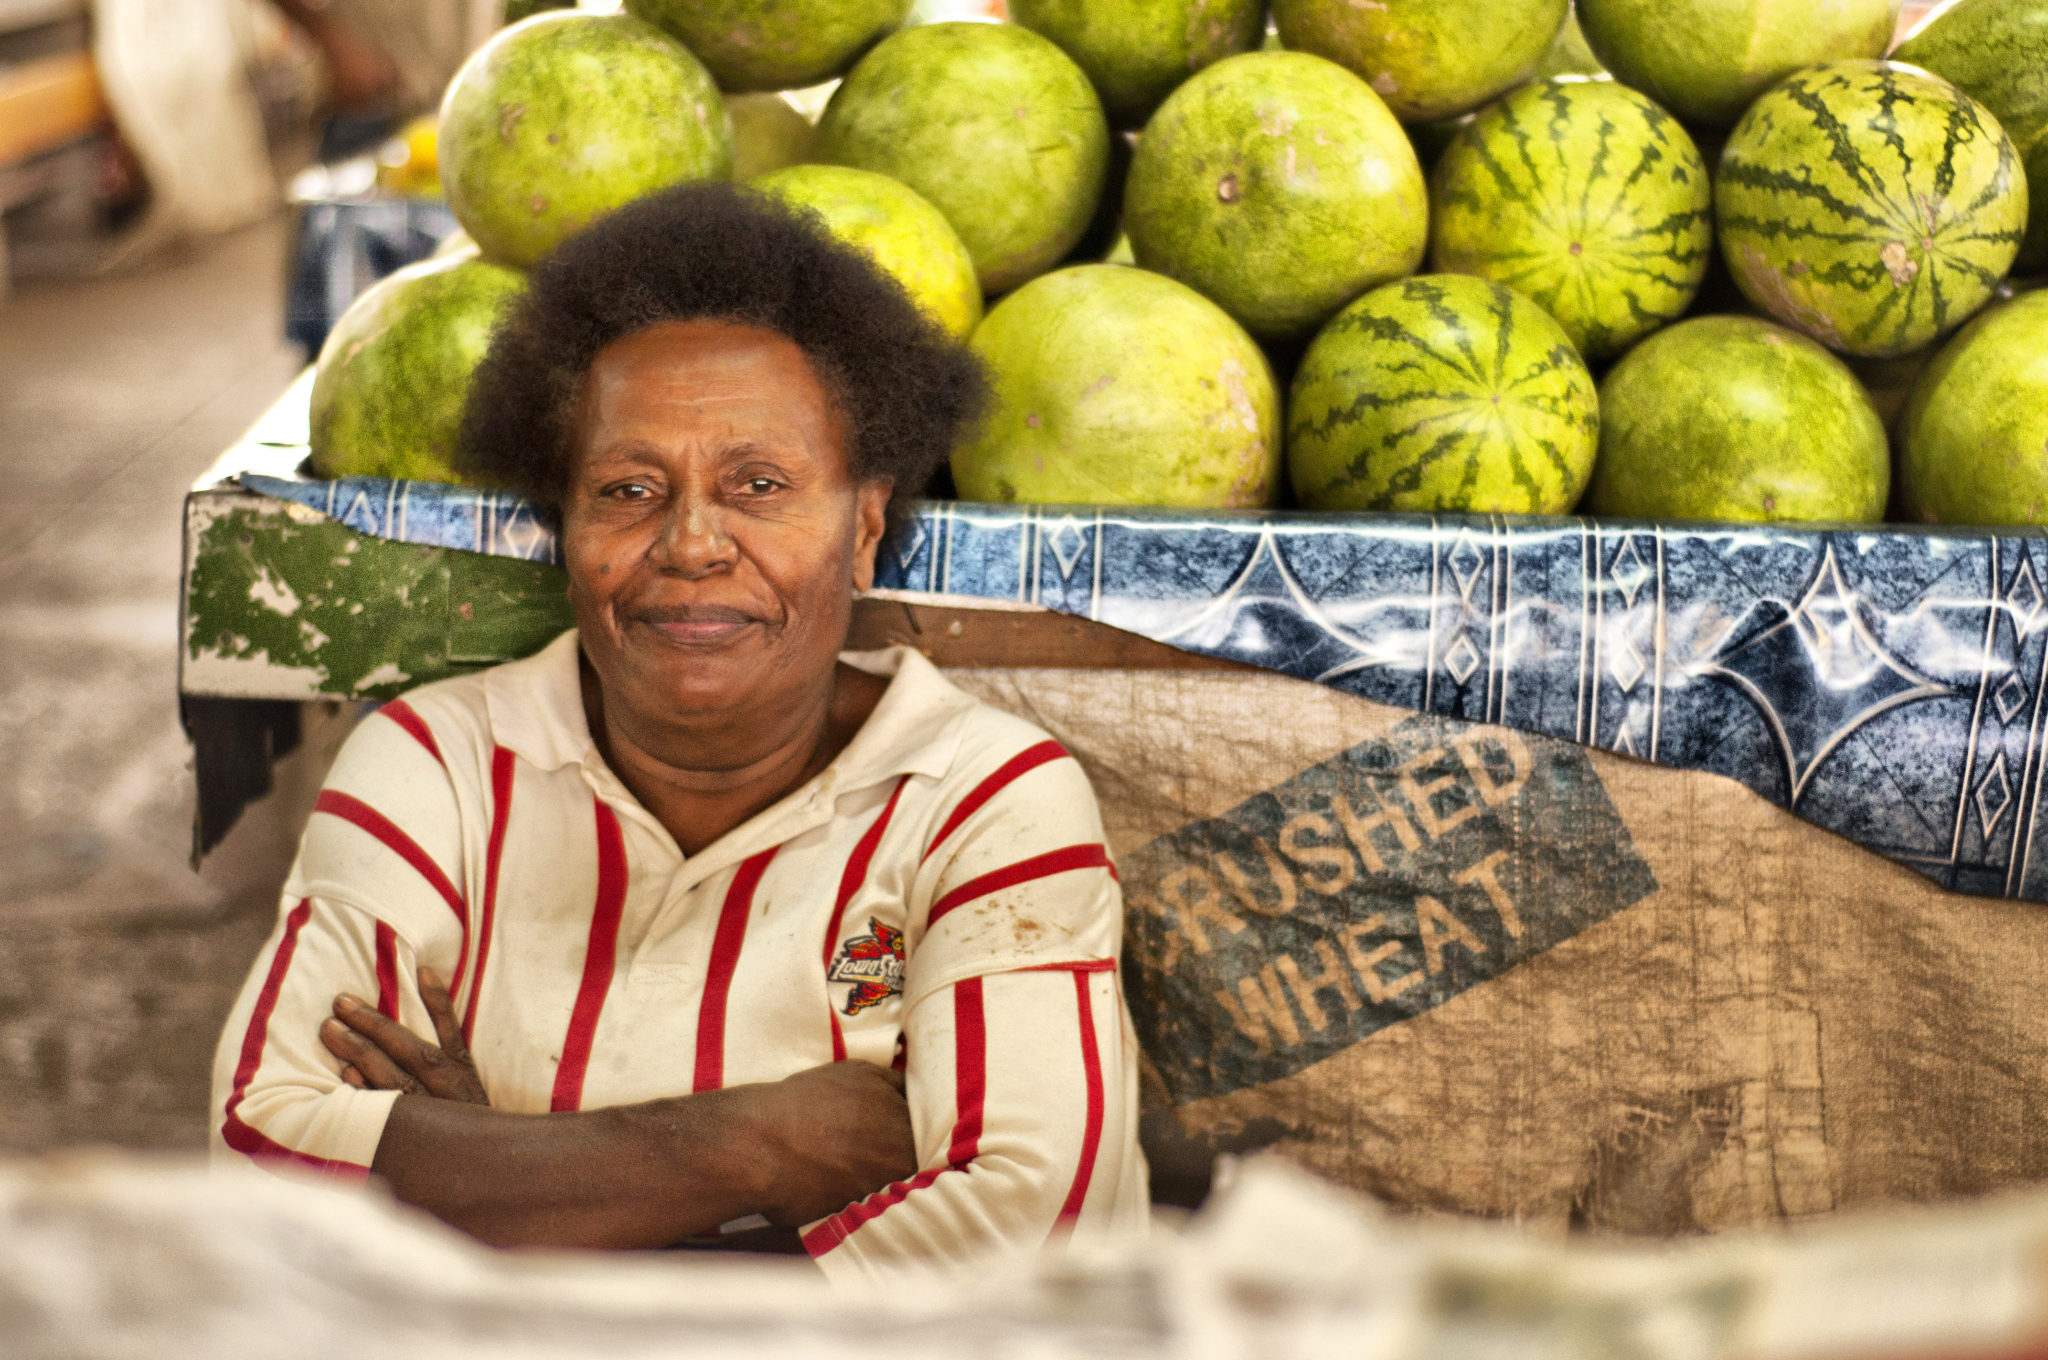 Fiji-travel-woman-melons